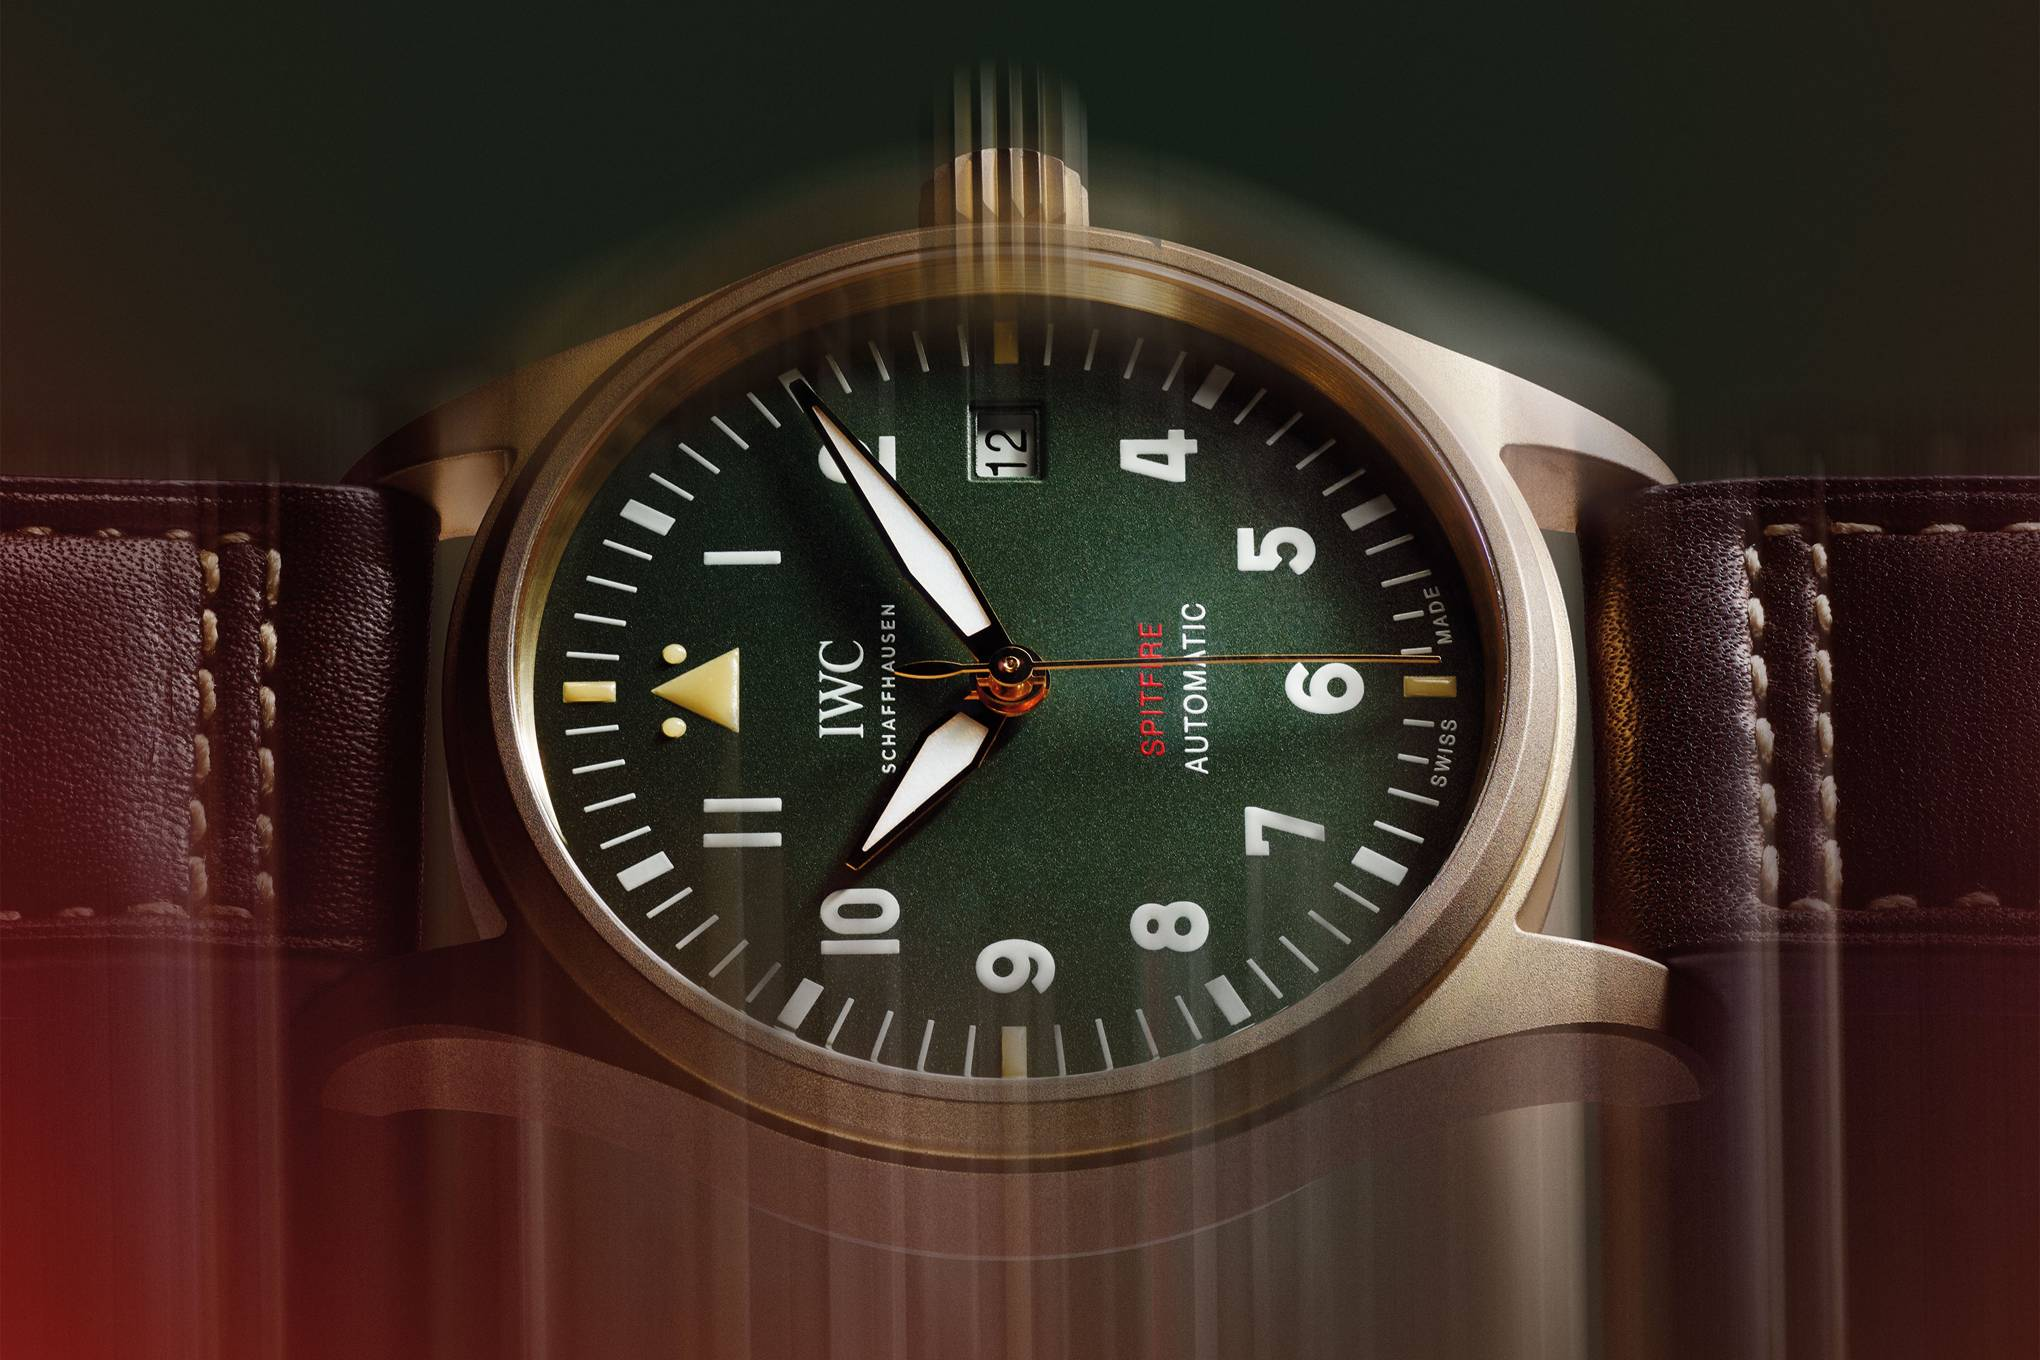 The best military-inspired watches in 2019